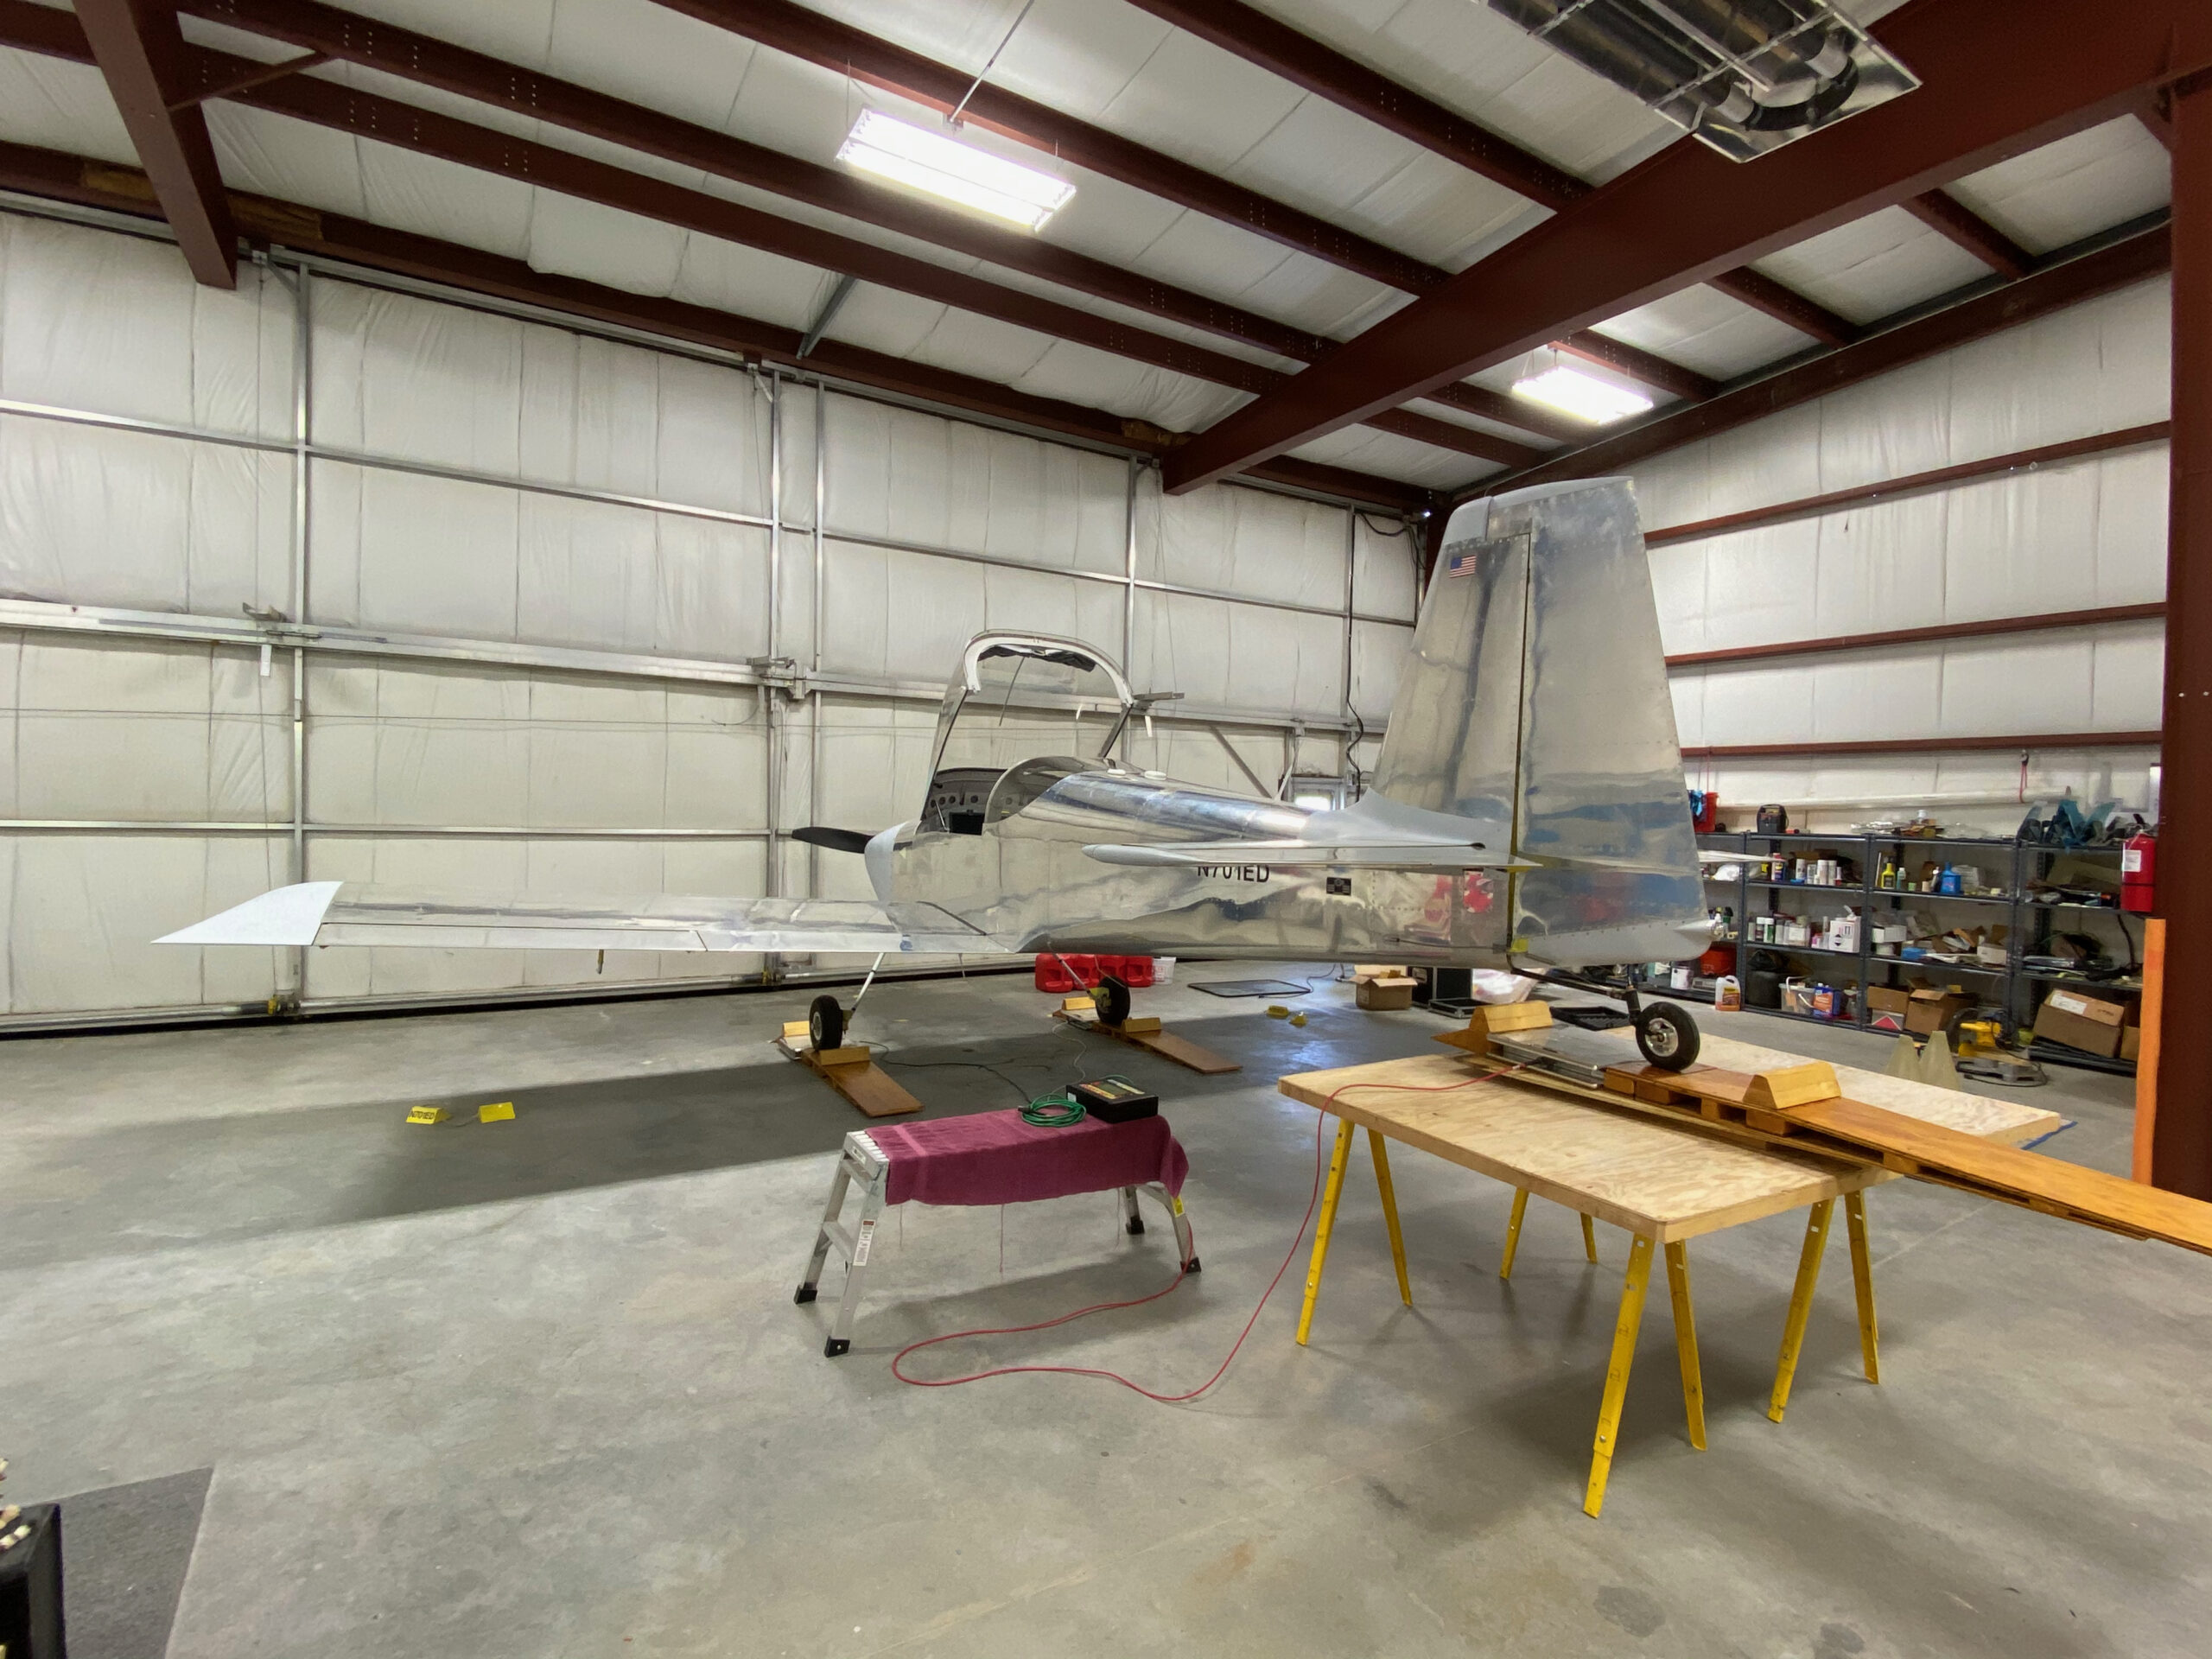 A tailwheel on a scale